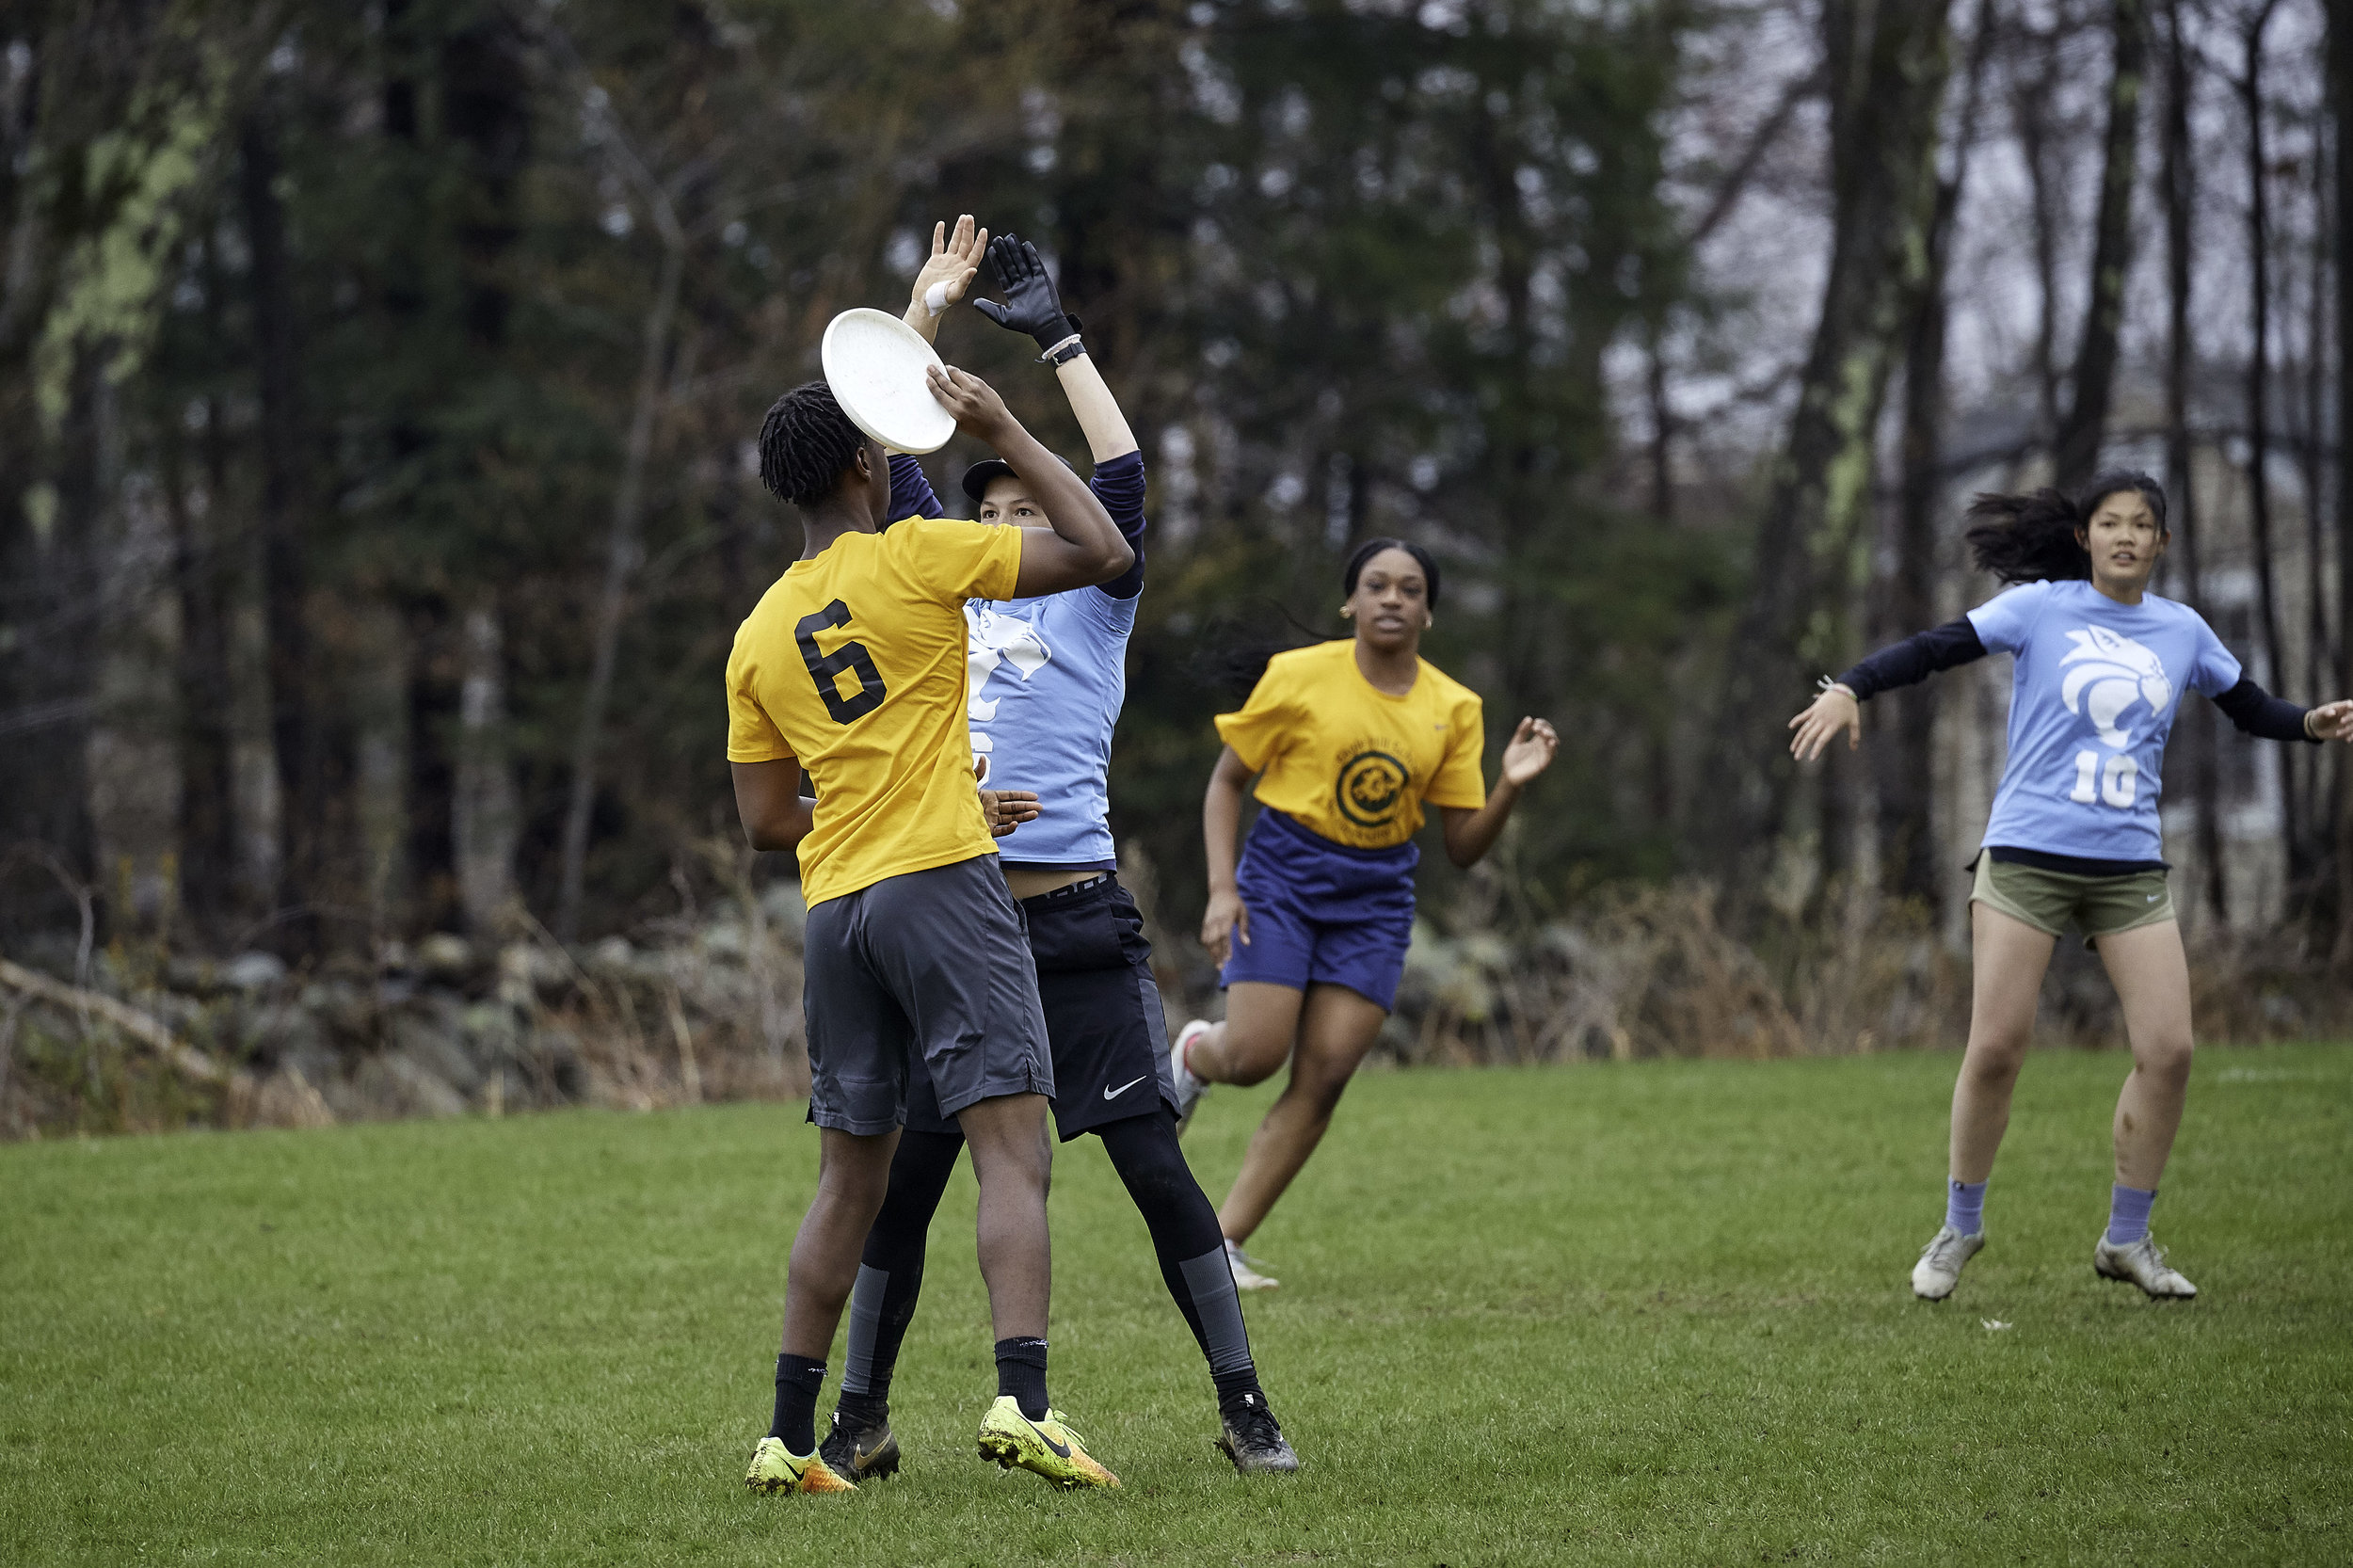 Ultimate Frisbee vs. Eagle Hill School - May 3, 2019 - 188416.jpg